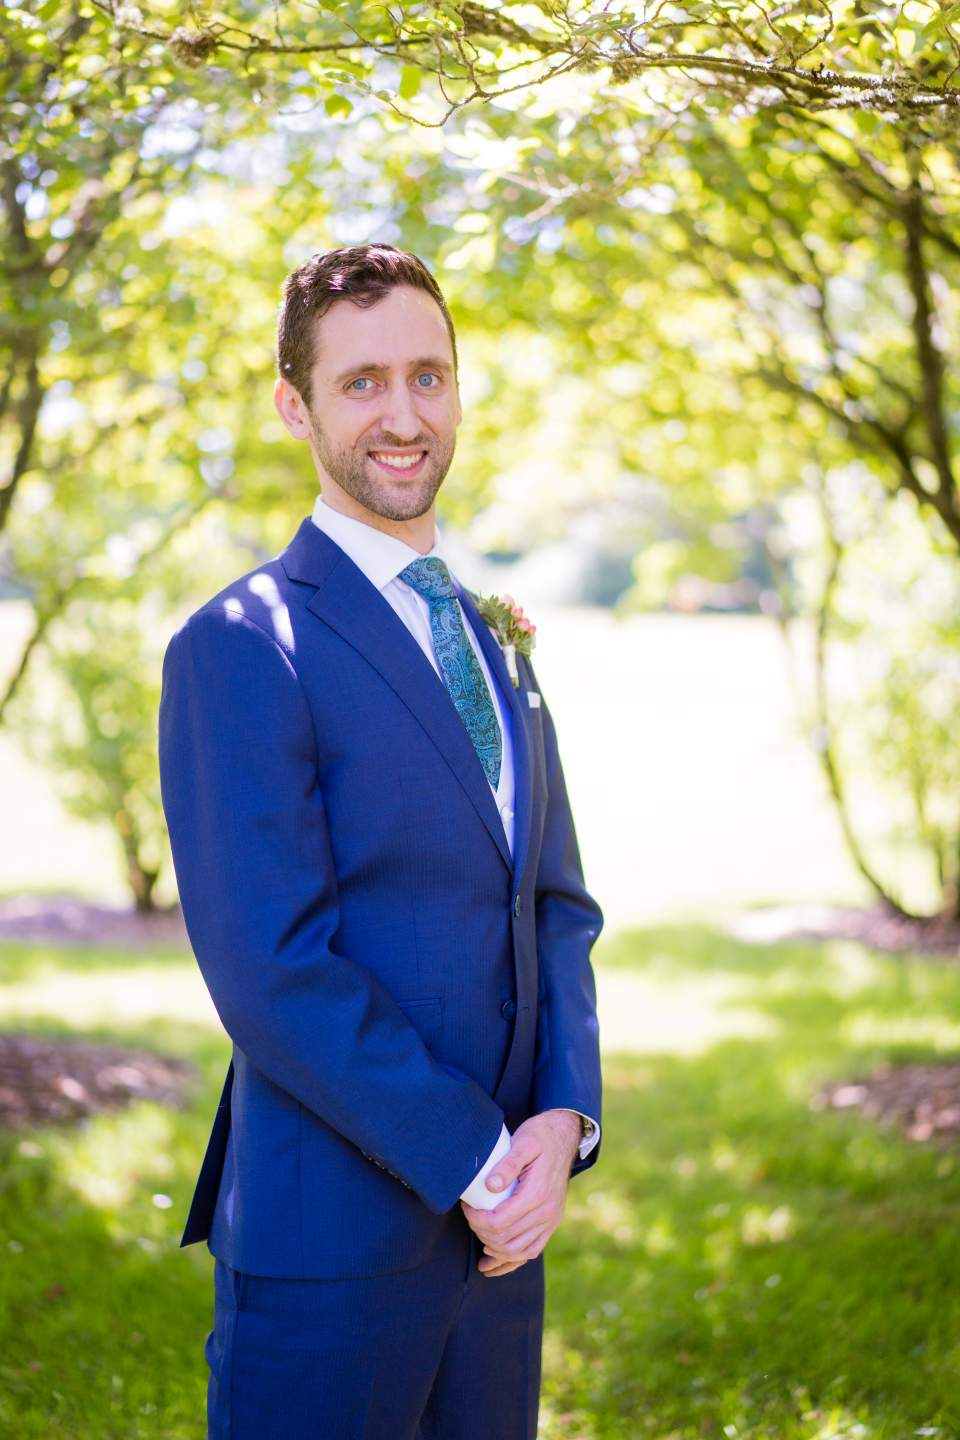 formal photo of groom on wedding day